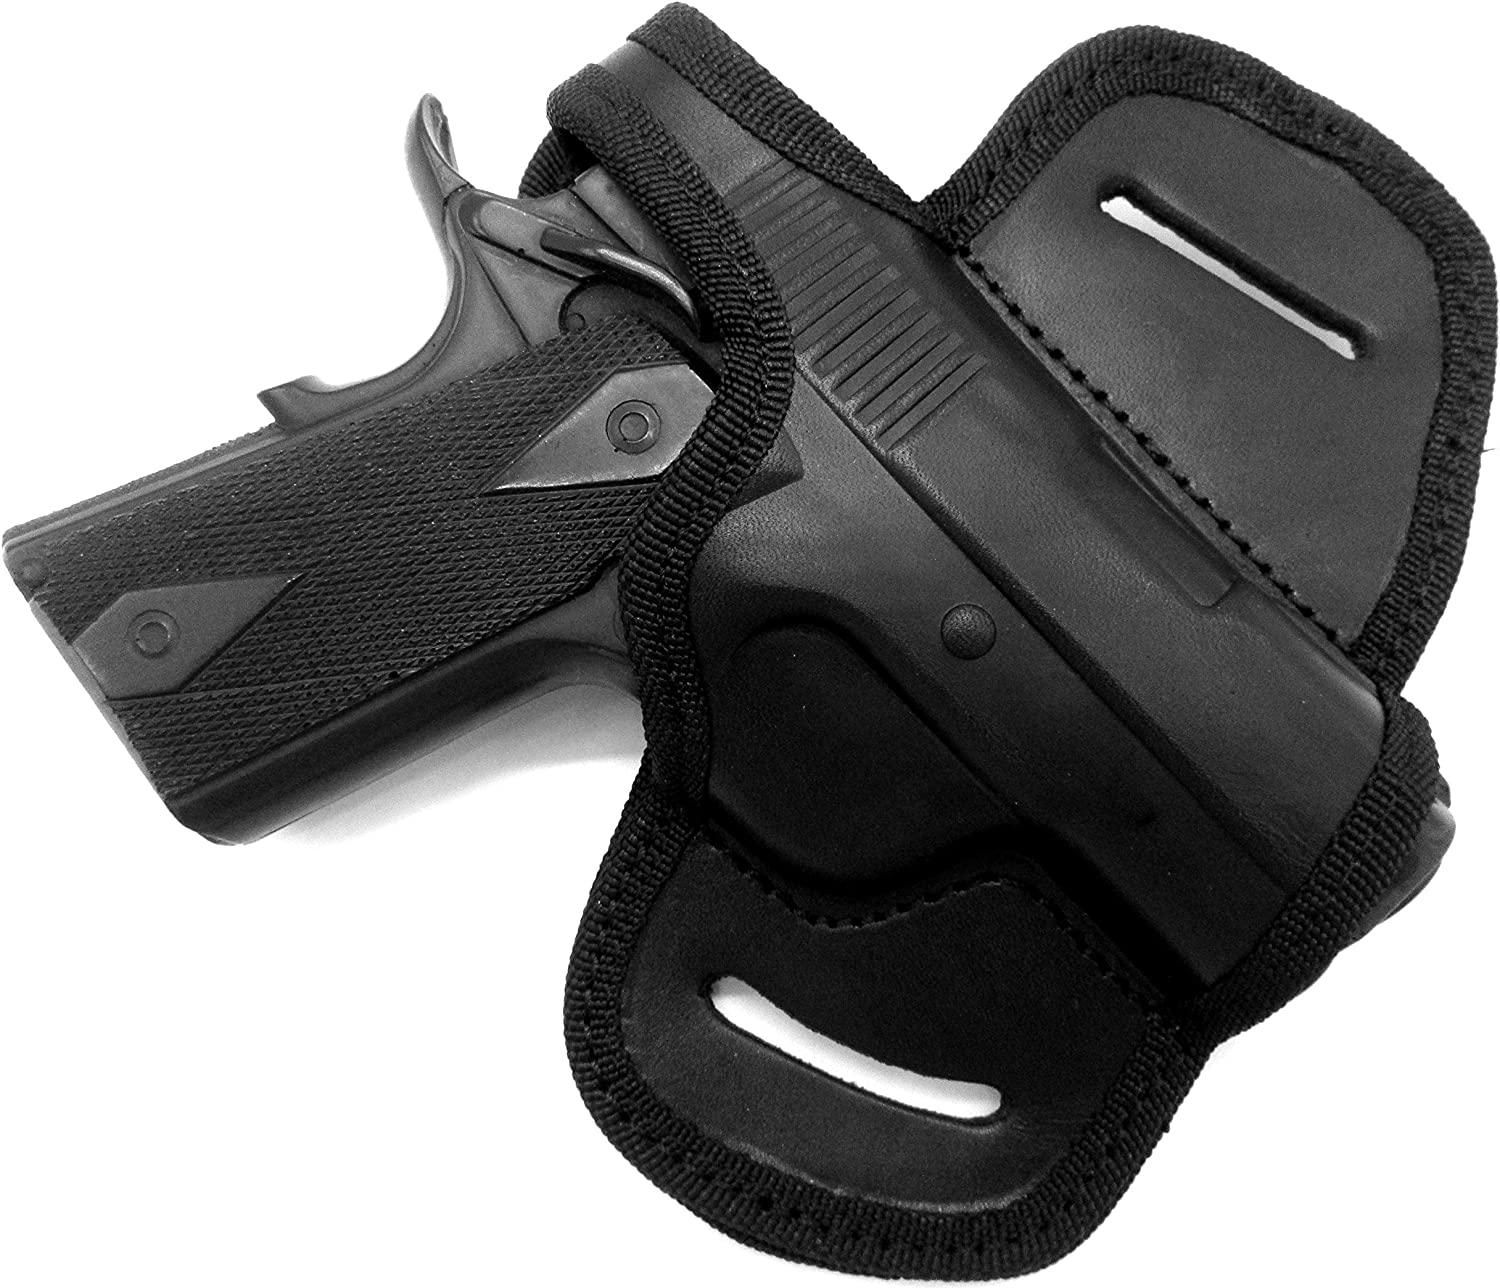 Kimber Ultra Carry II Holster Leather Thumb Break Locked Cocked Made By Tagua